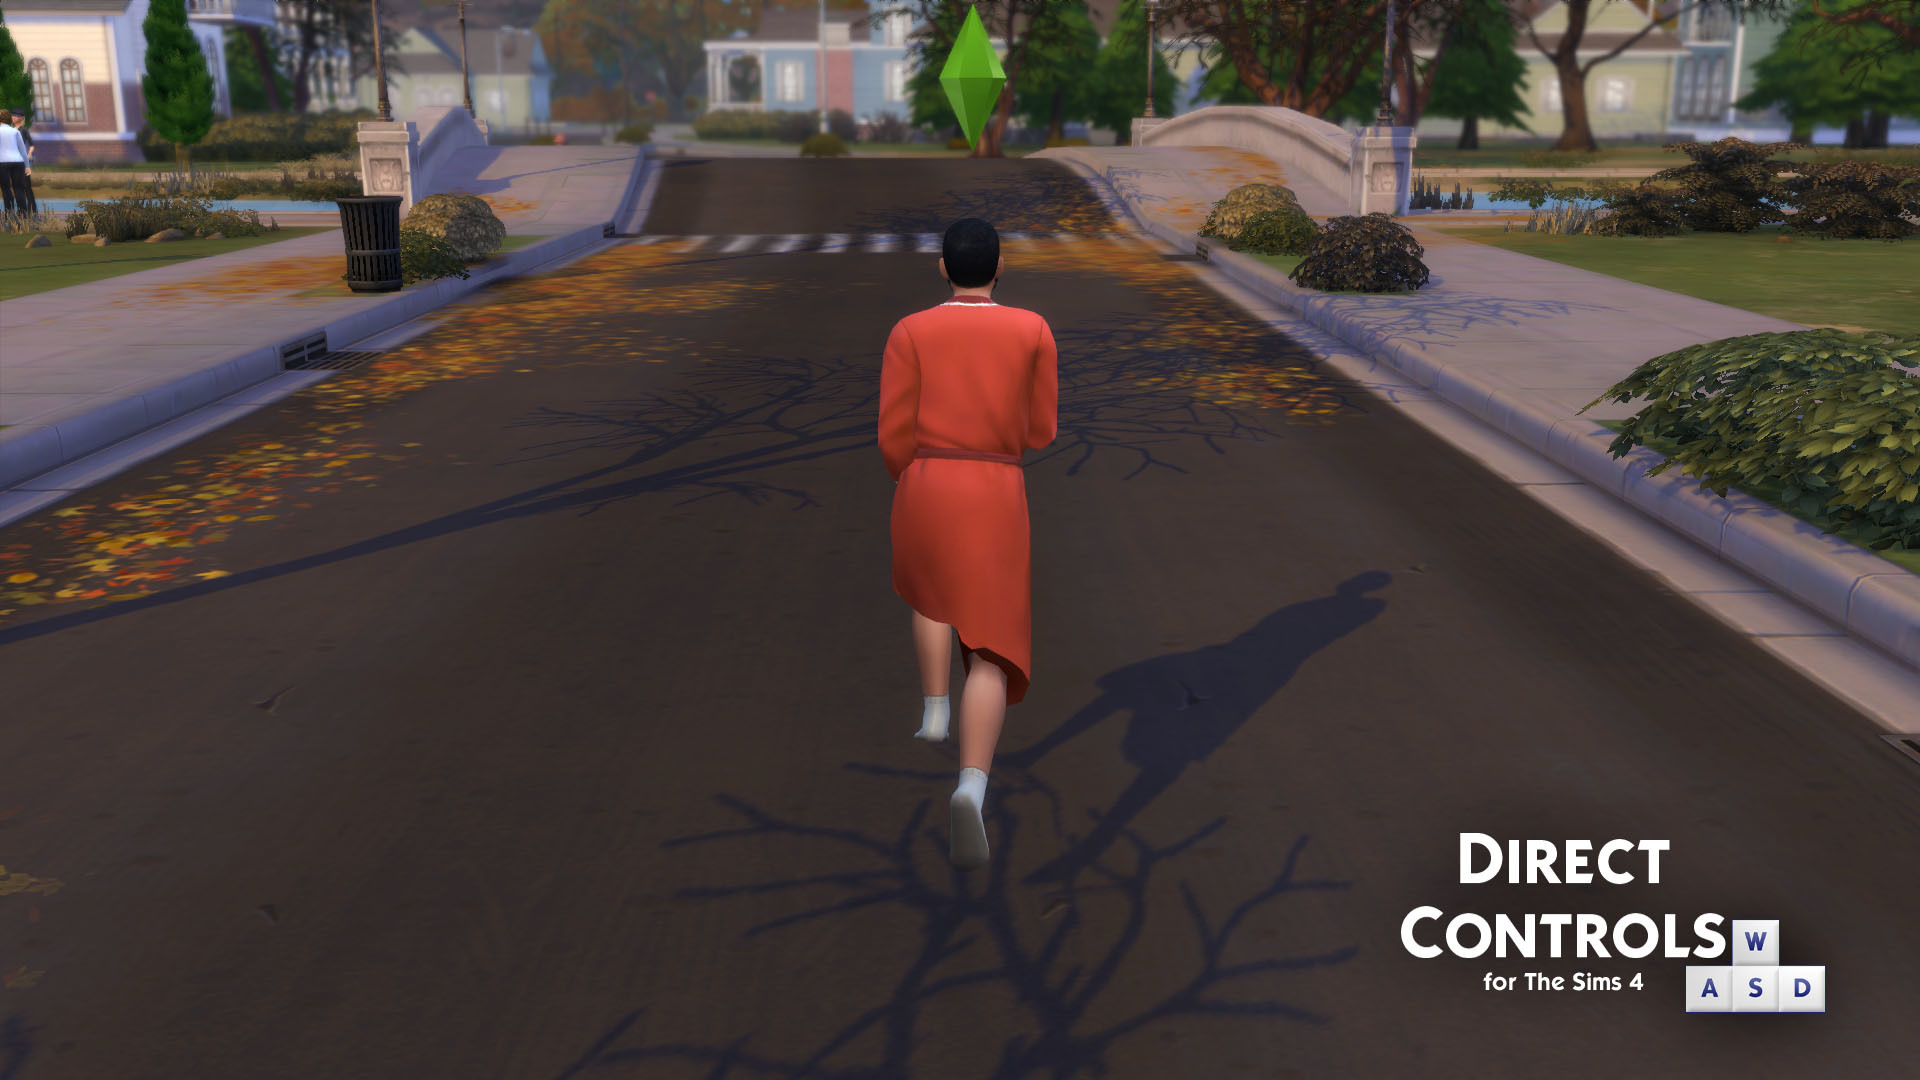 Mod The Sims - Direct Controls